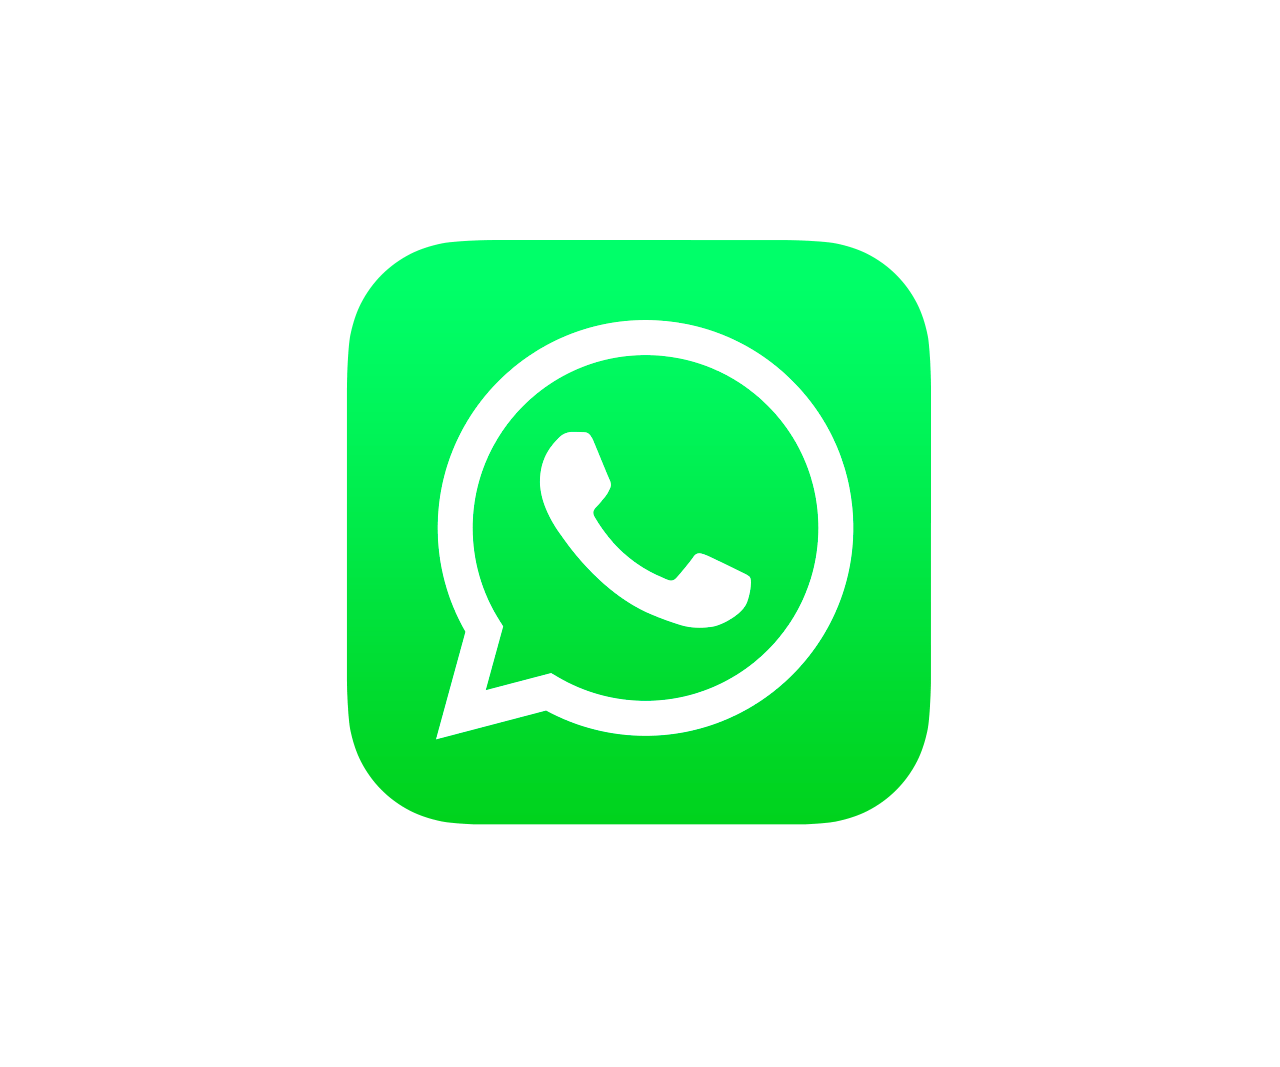 Whatsapp icon png. Ios transparent stickpng download